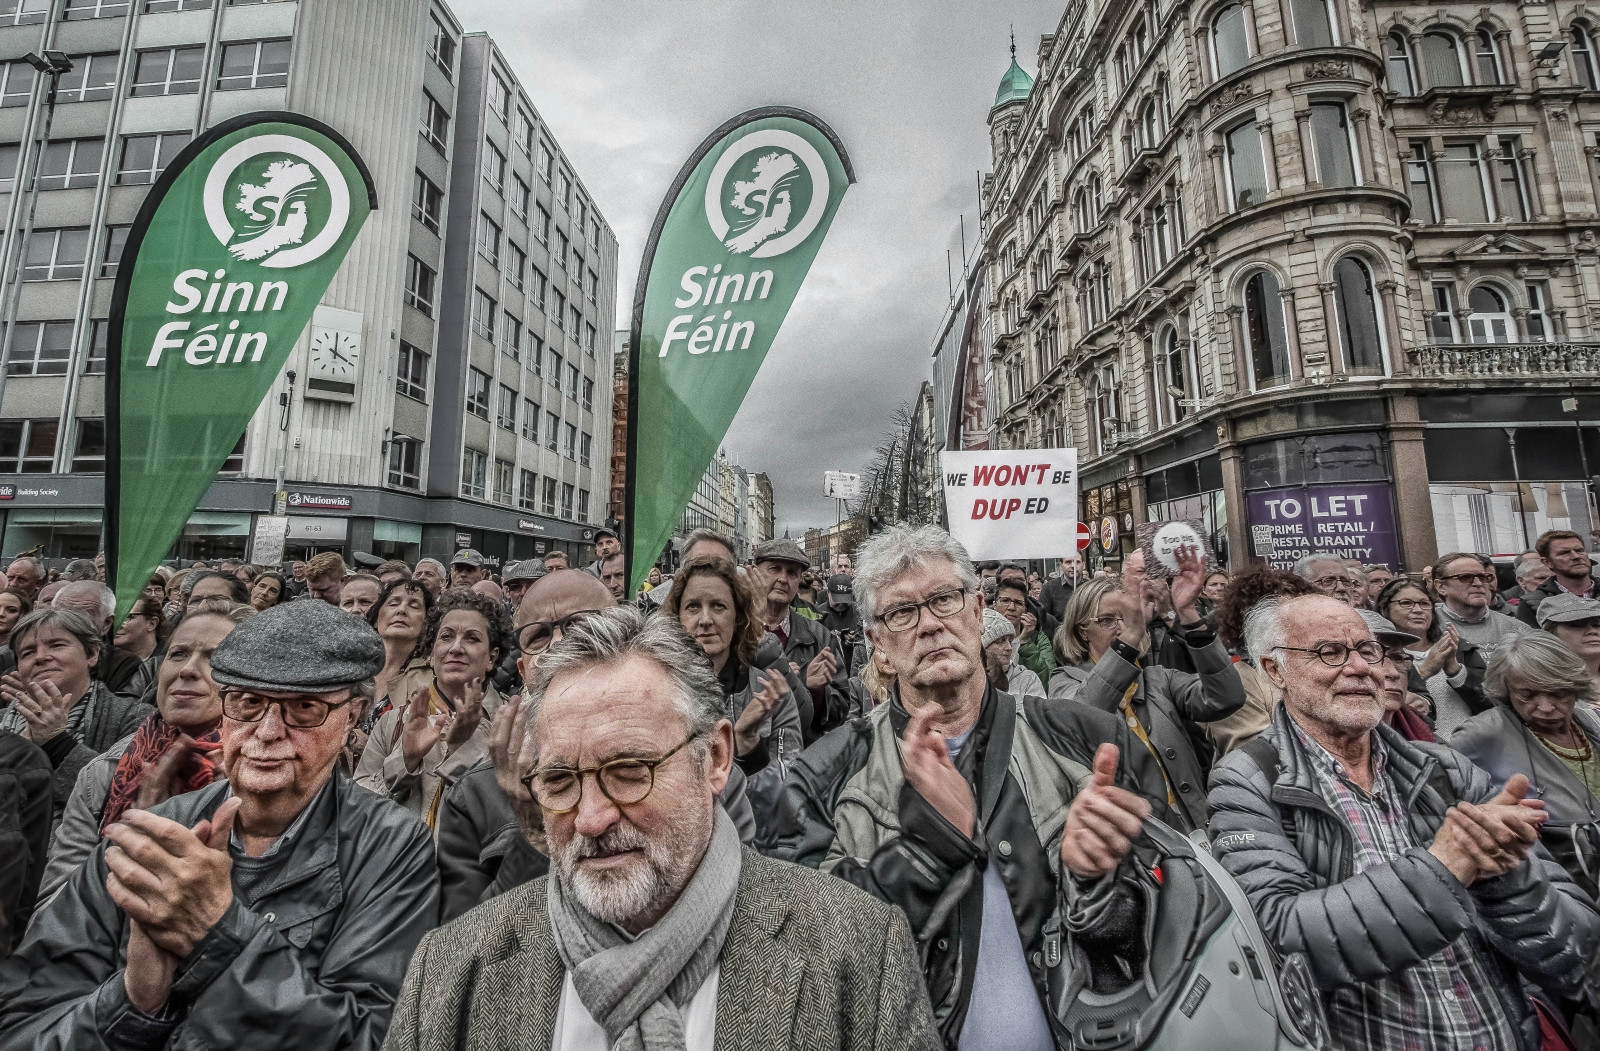 COLOUR - The Belfast Protest by Conor Cormac Davidson (8 marks)